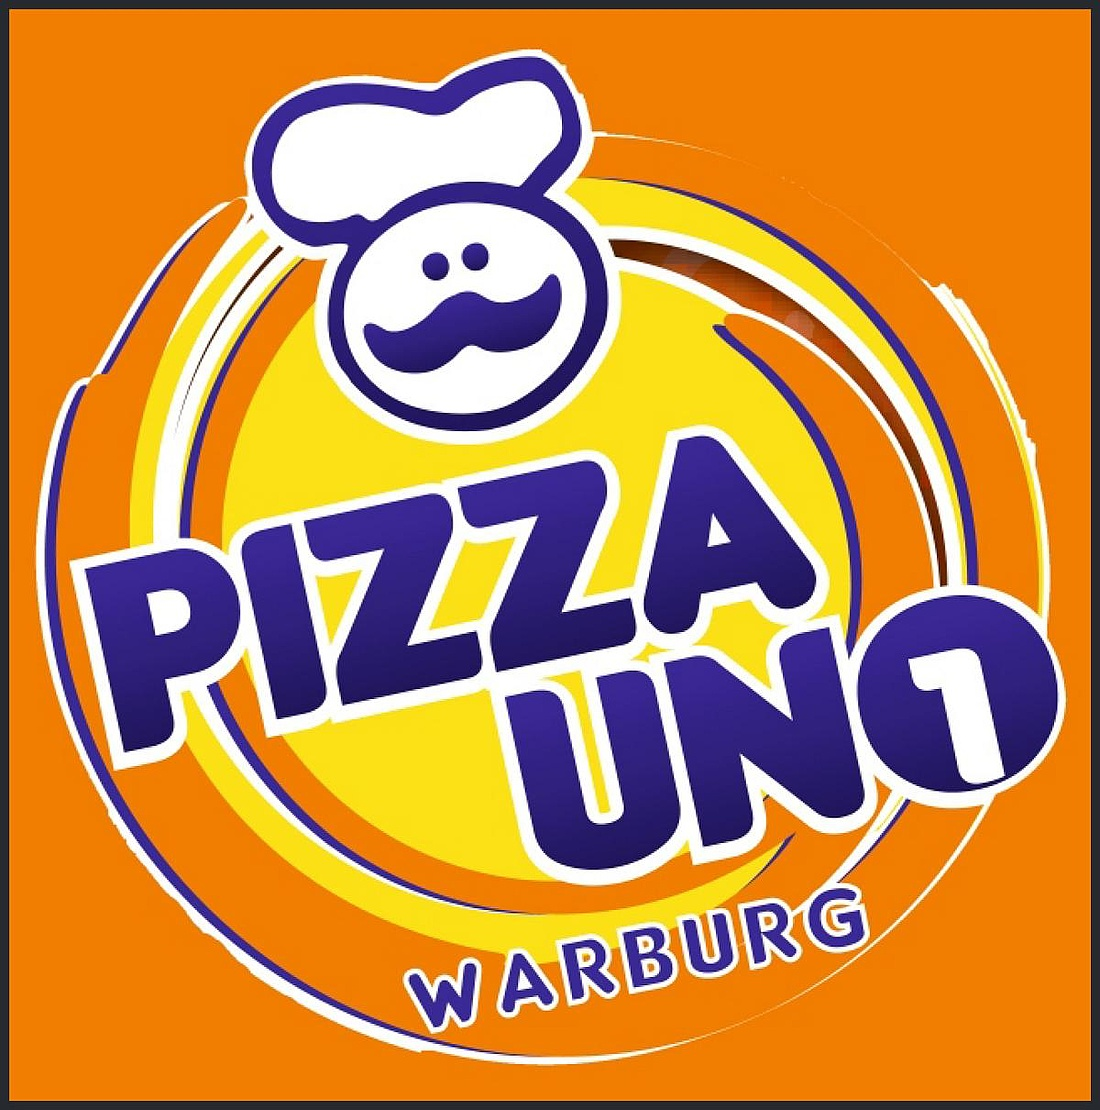 Sponsoren-Logo von Pizza Uno